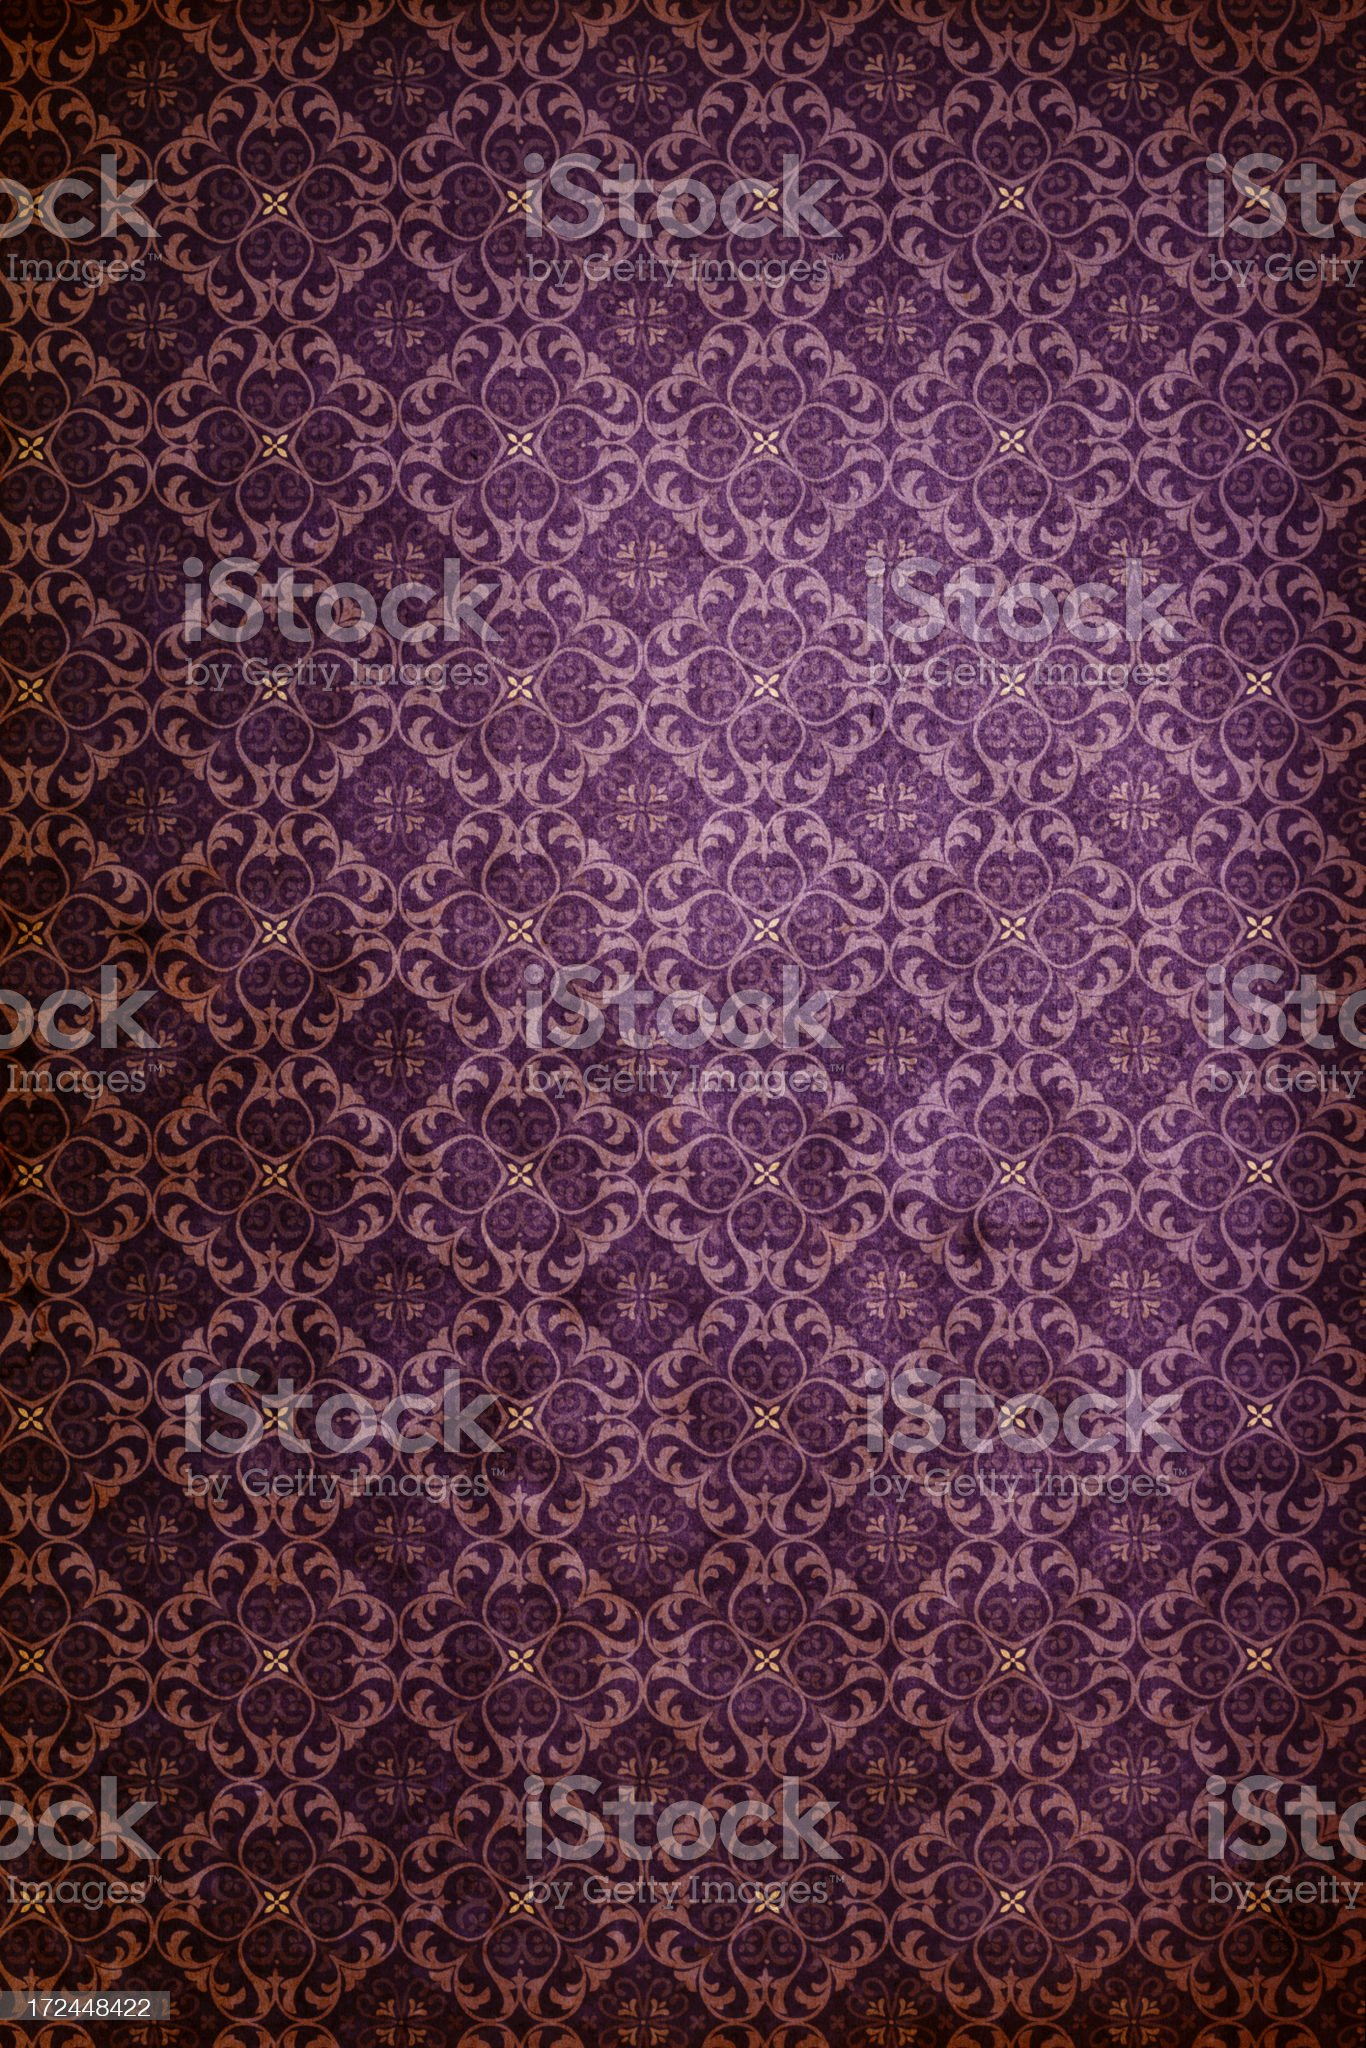 Purple Antique Wallpaper – Victorian Style royalty-free stock photo